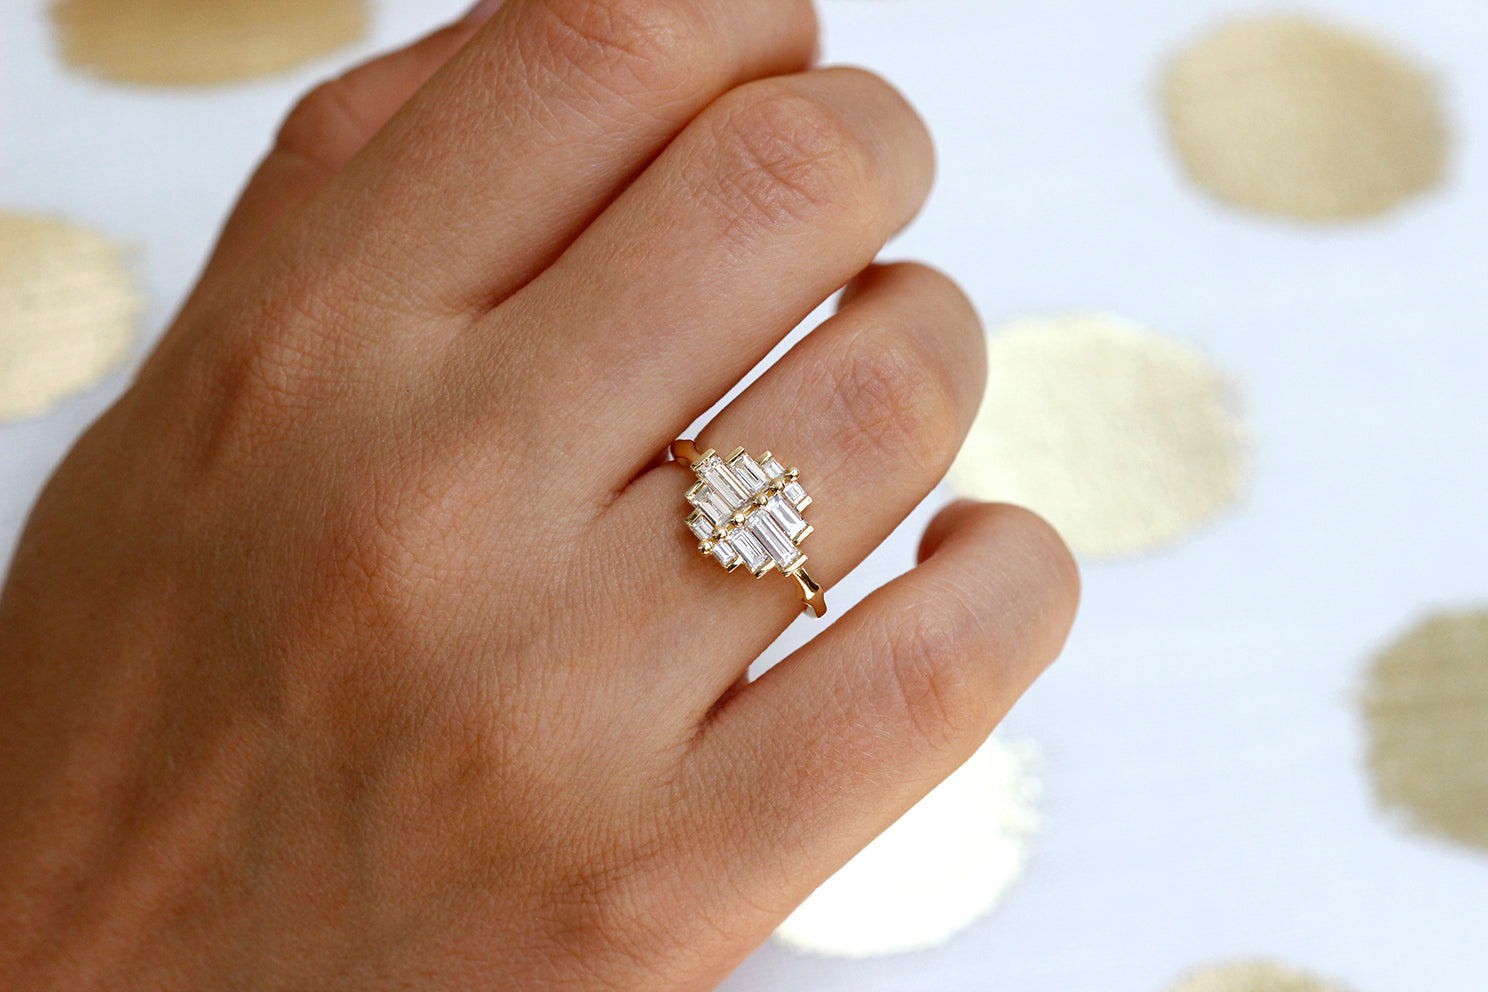 Art Deco Baguette Cluster Engagement Ring On Finger